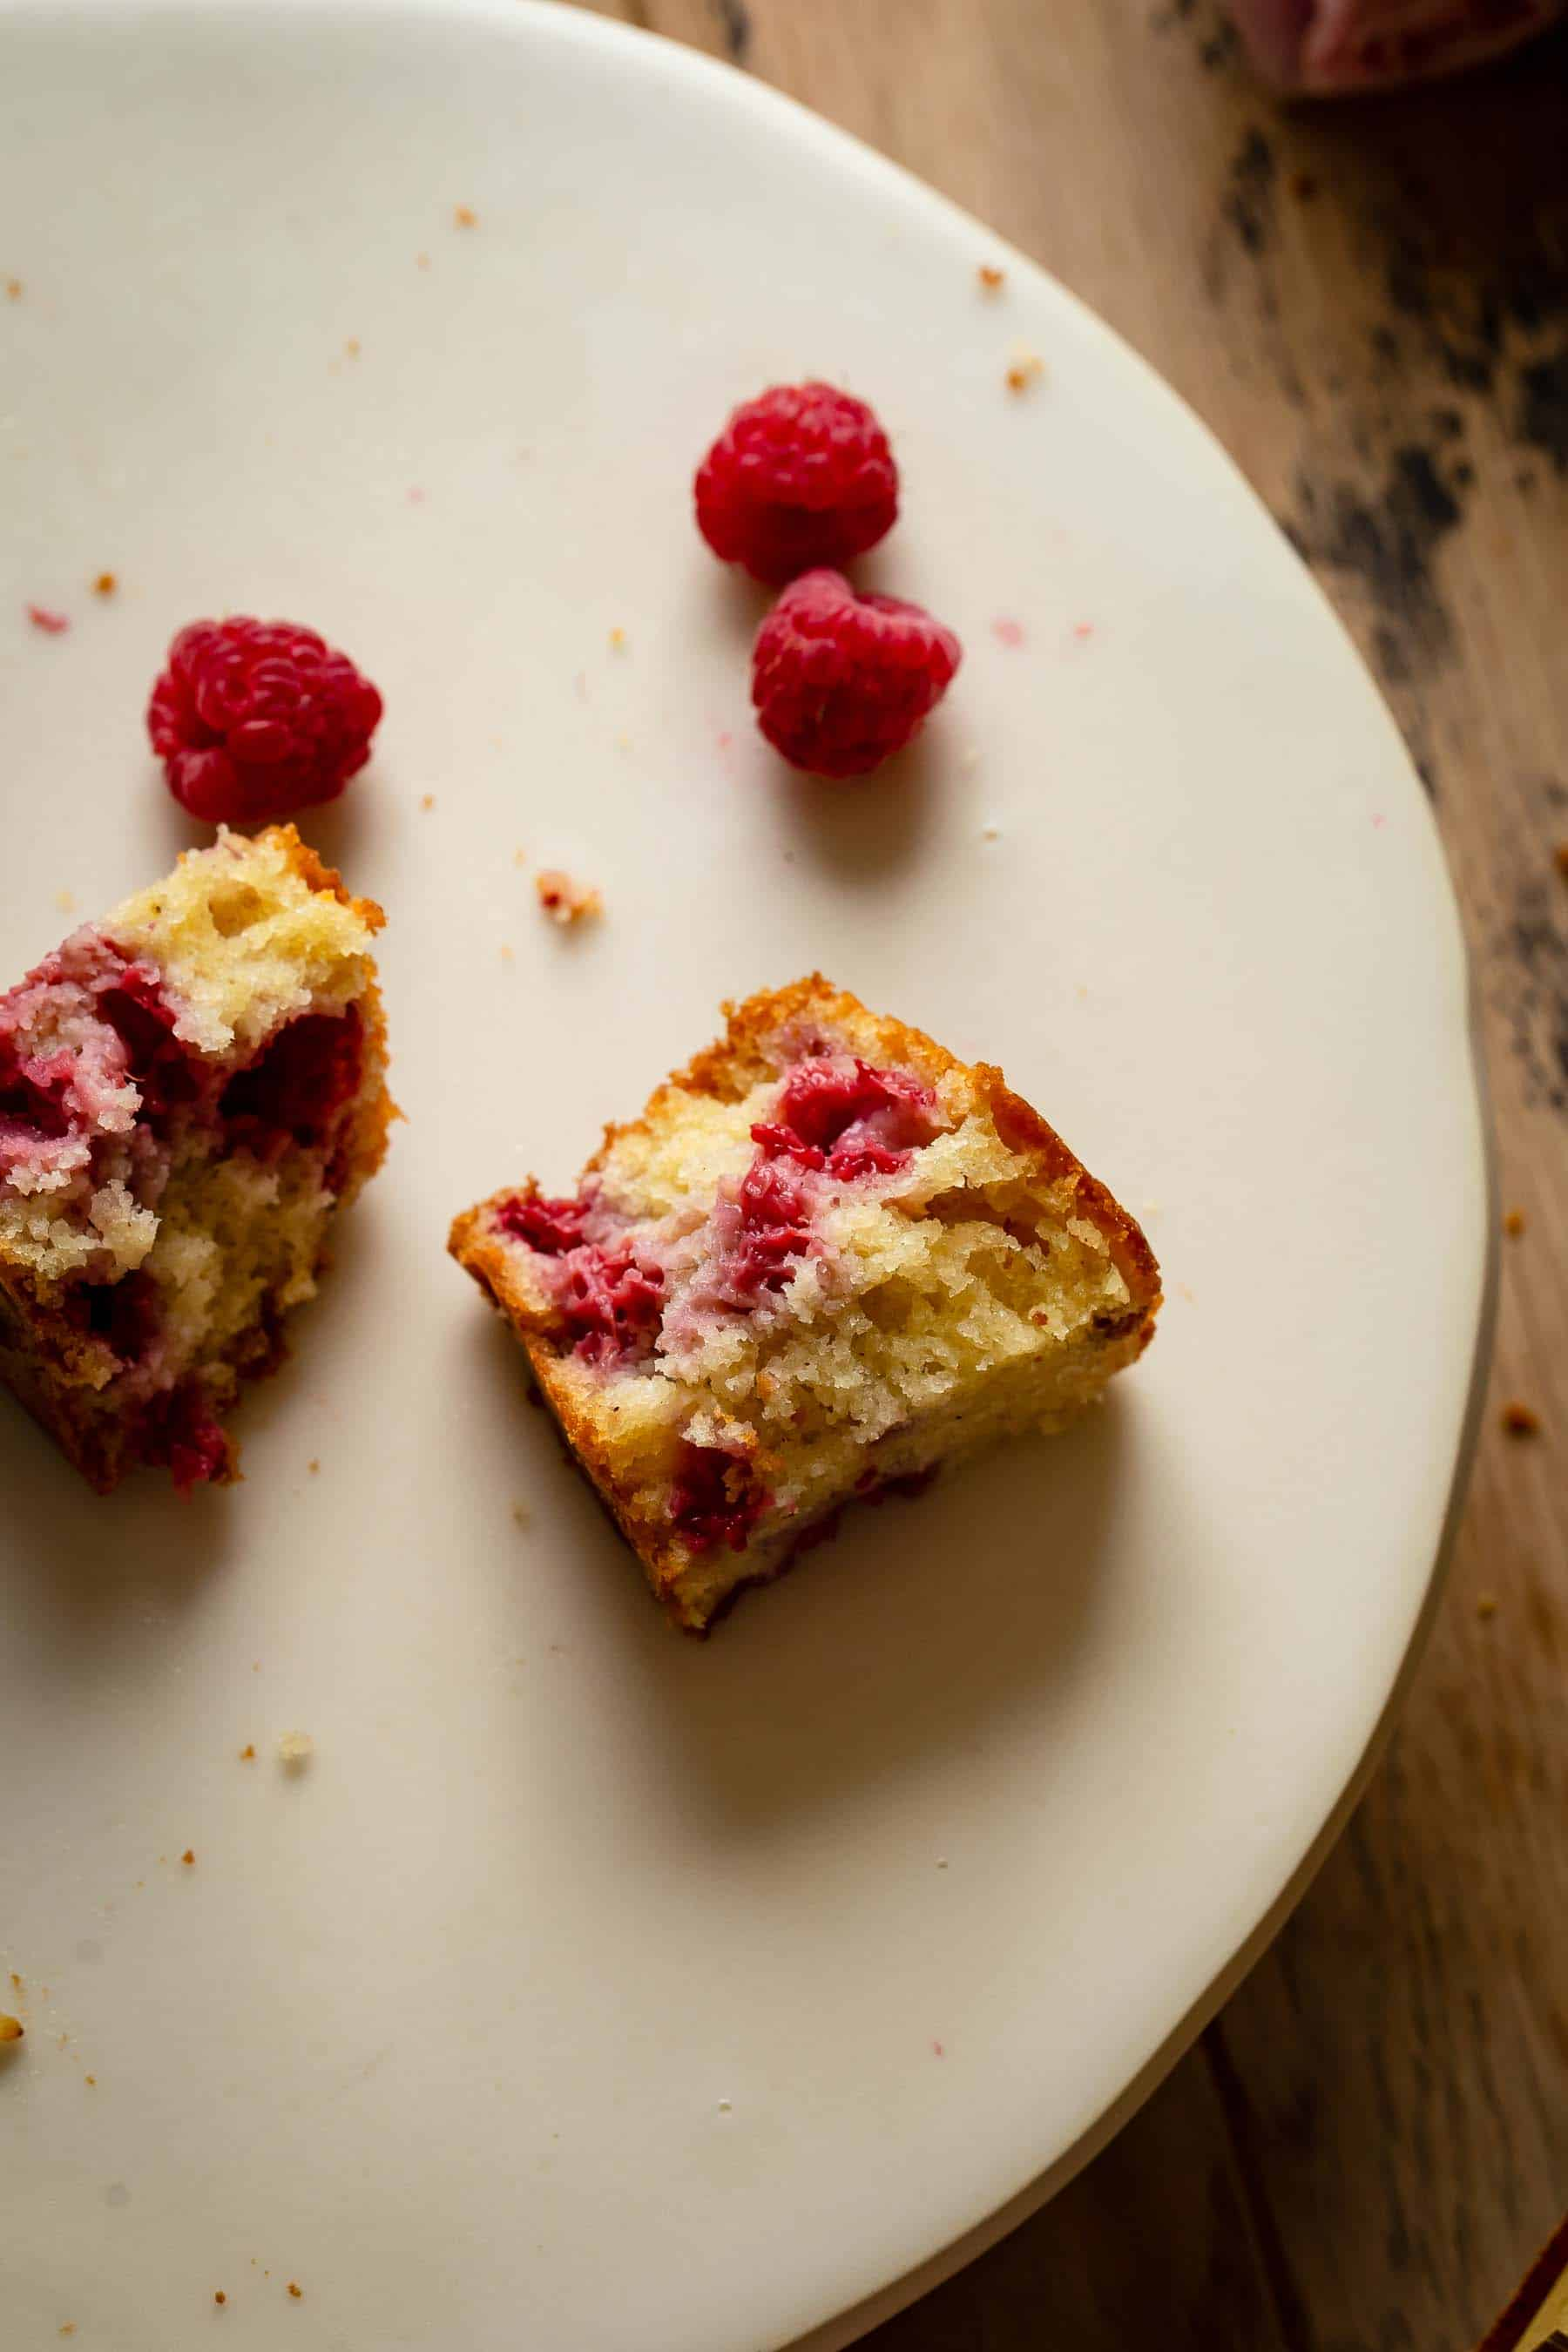 half eaten piece of cake with raspberries by it